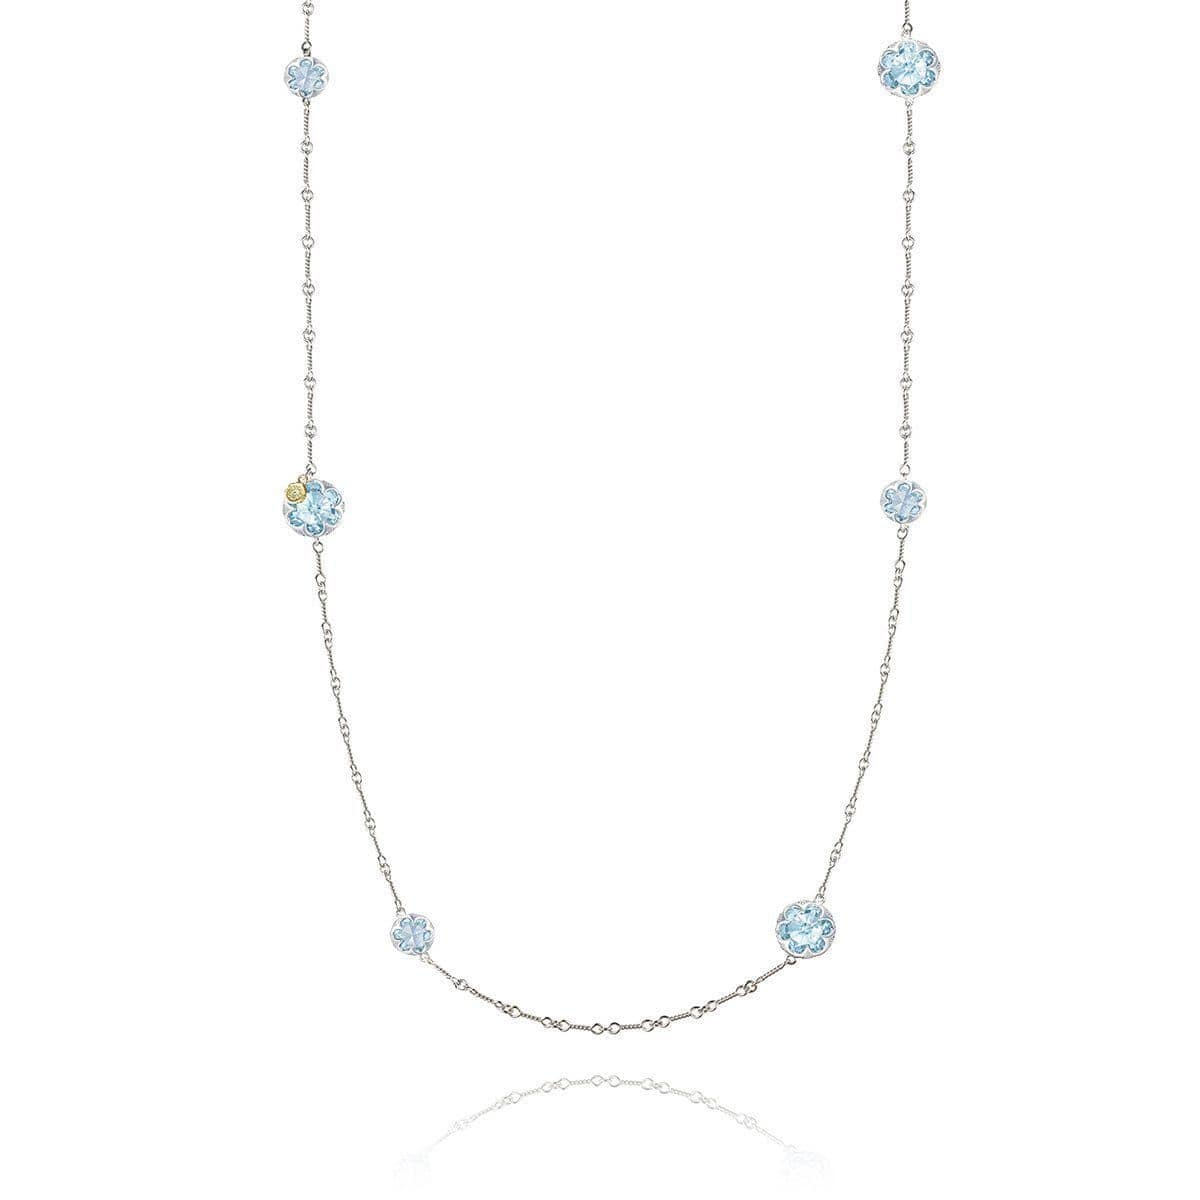 Multi-Gem Station Necklace with Sky Blue Topaz - SN20302-Tacori-Renee Taylor Gallery